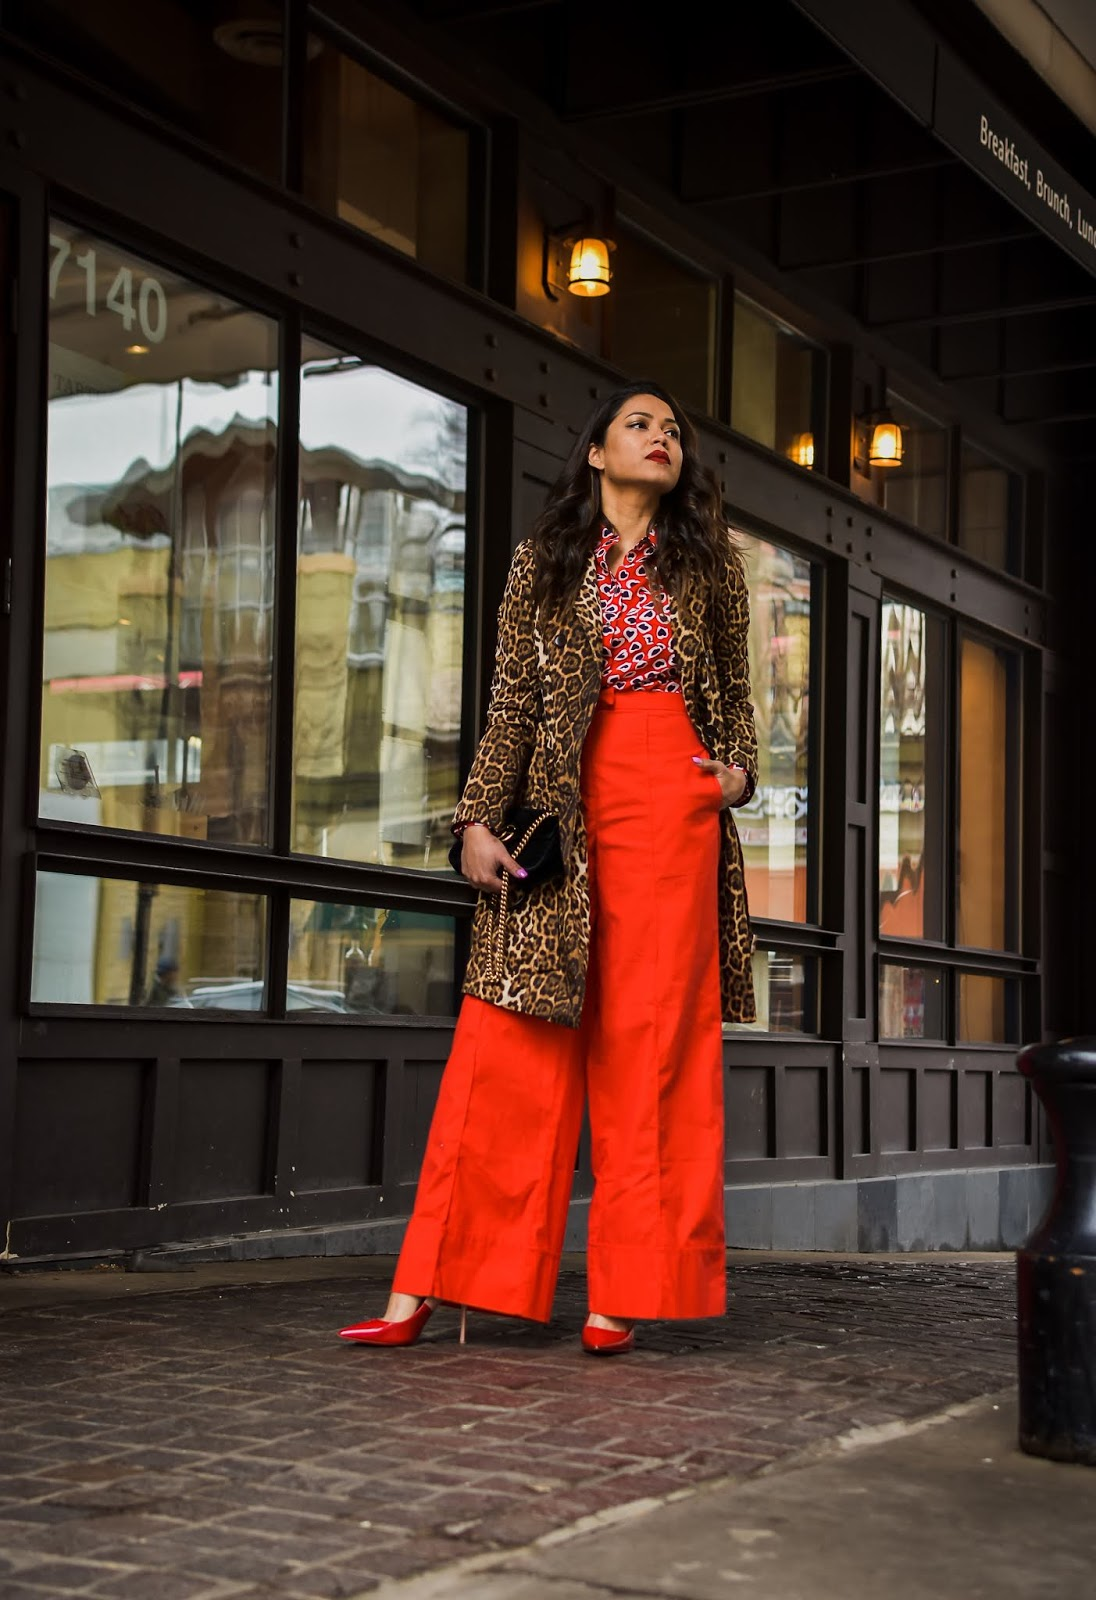 red heart shirt, red high waist trousers, print mixing, red and leopard, street style, fashion, style, dc blogger, myriad musings, fenty beayty uncensored,saumya shiohare